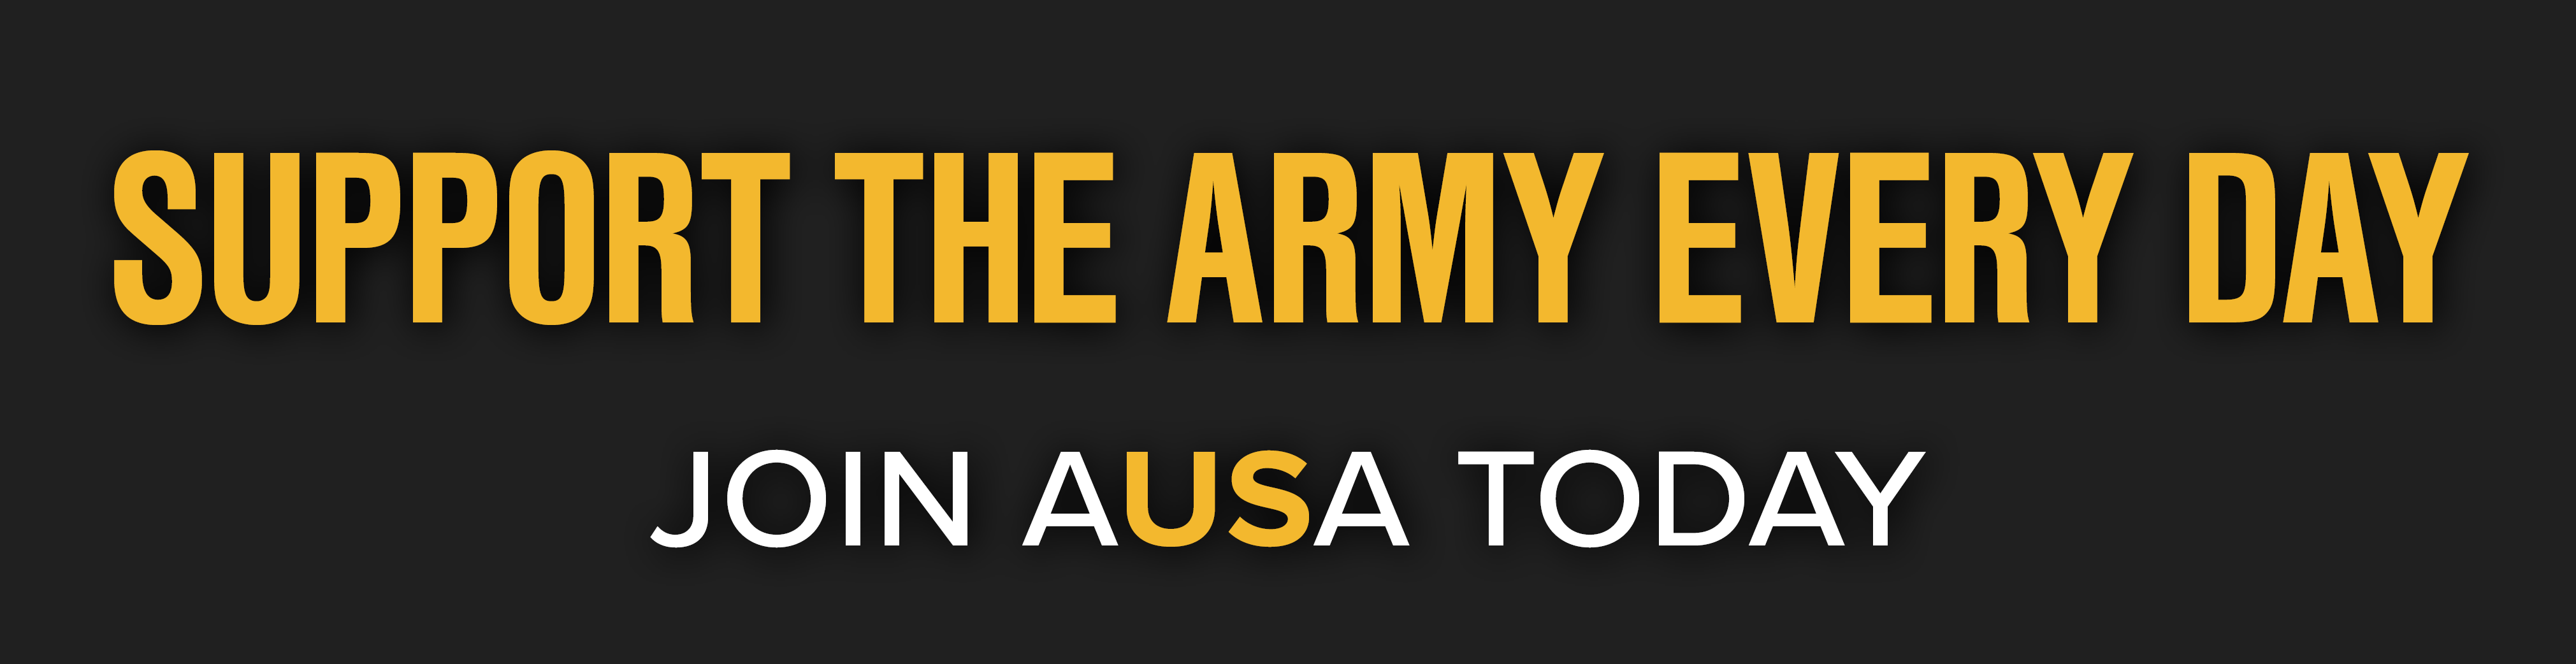 ausa-banner-2020.png